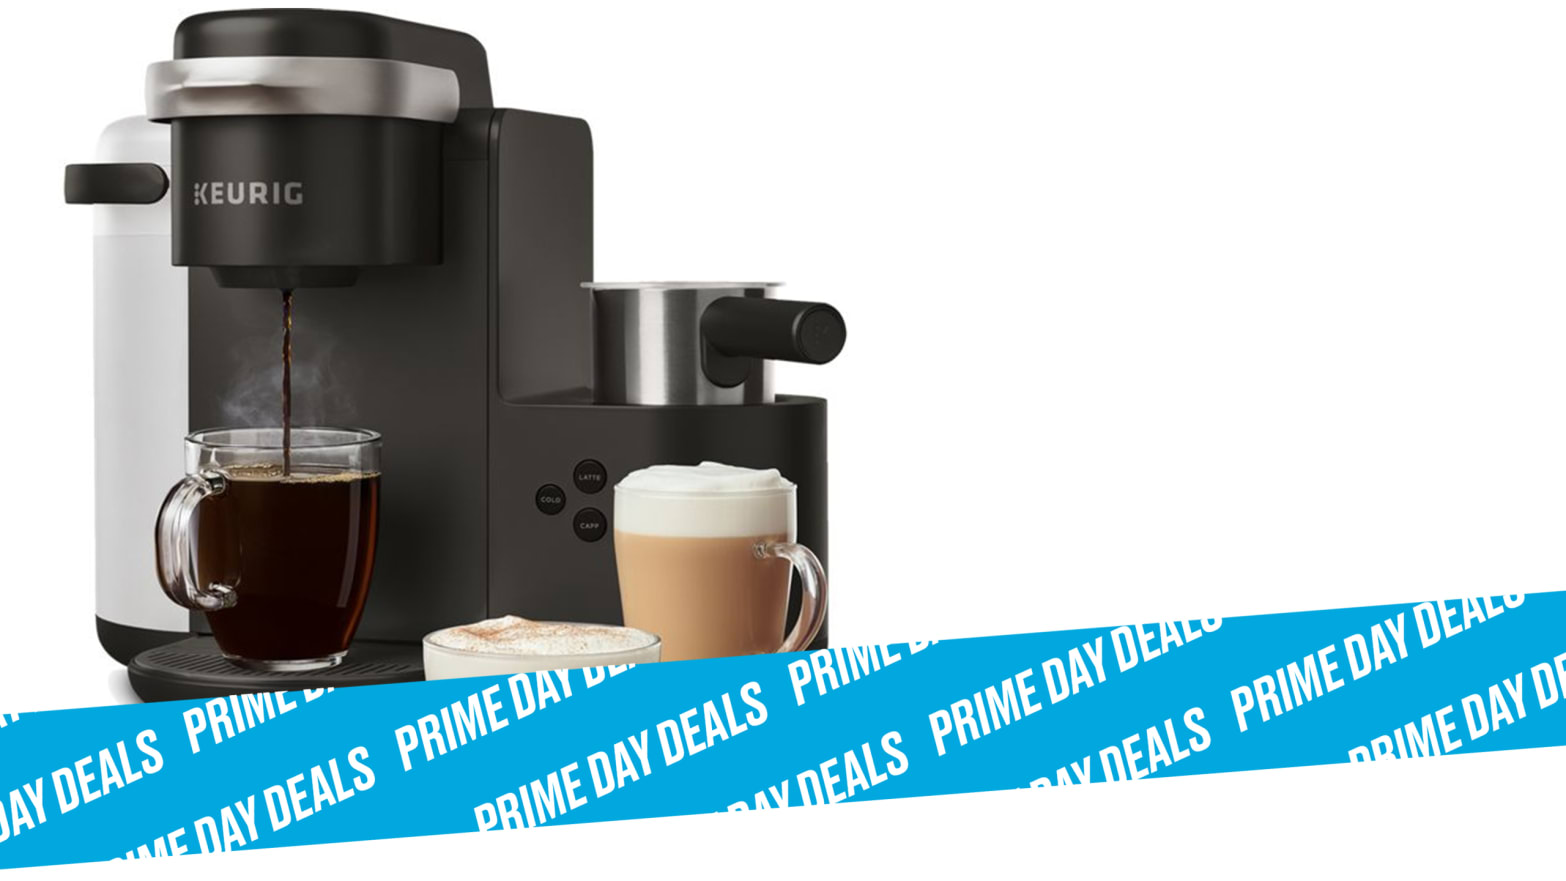 The Keurig K-Cafe Is $100 for Prime Day